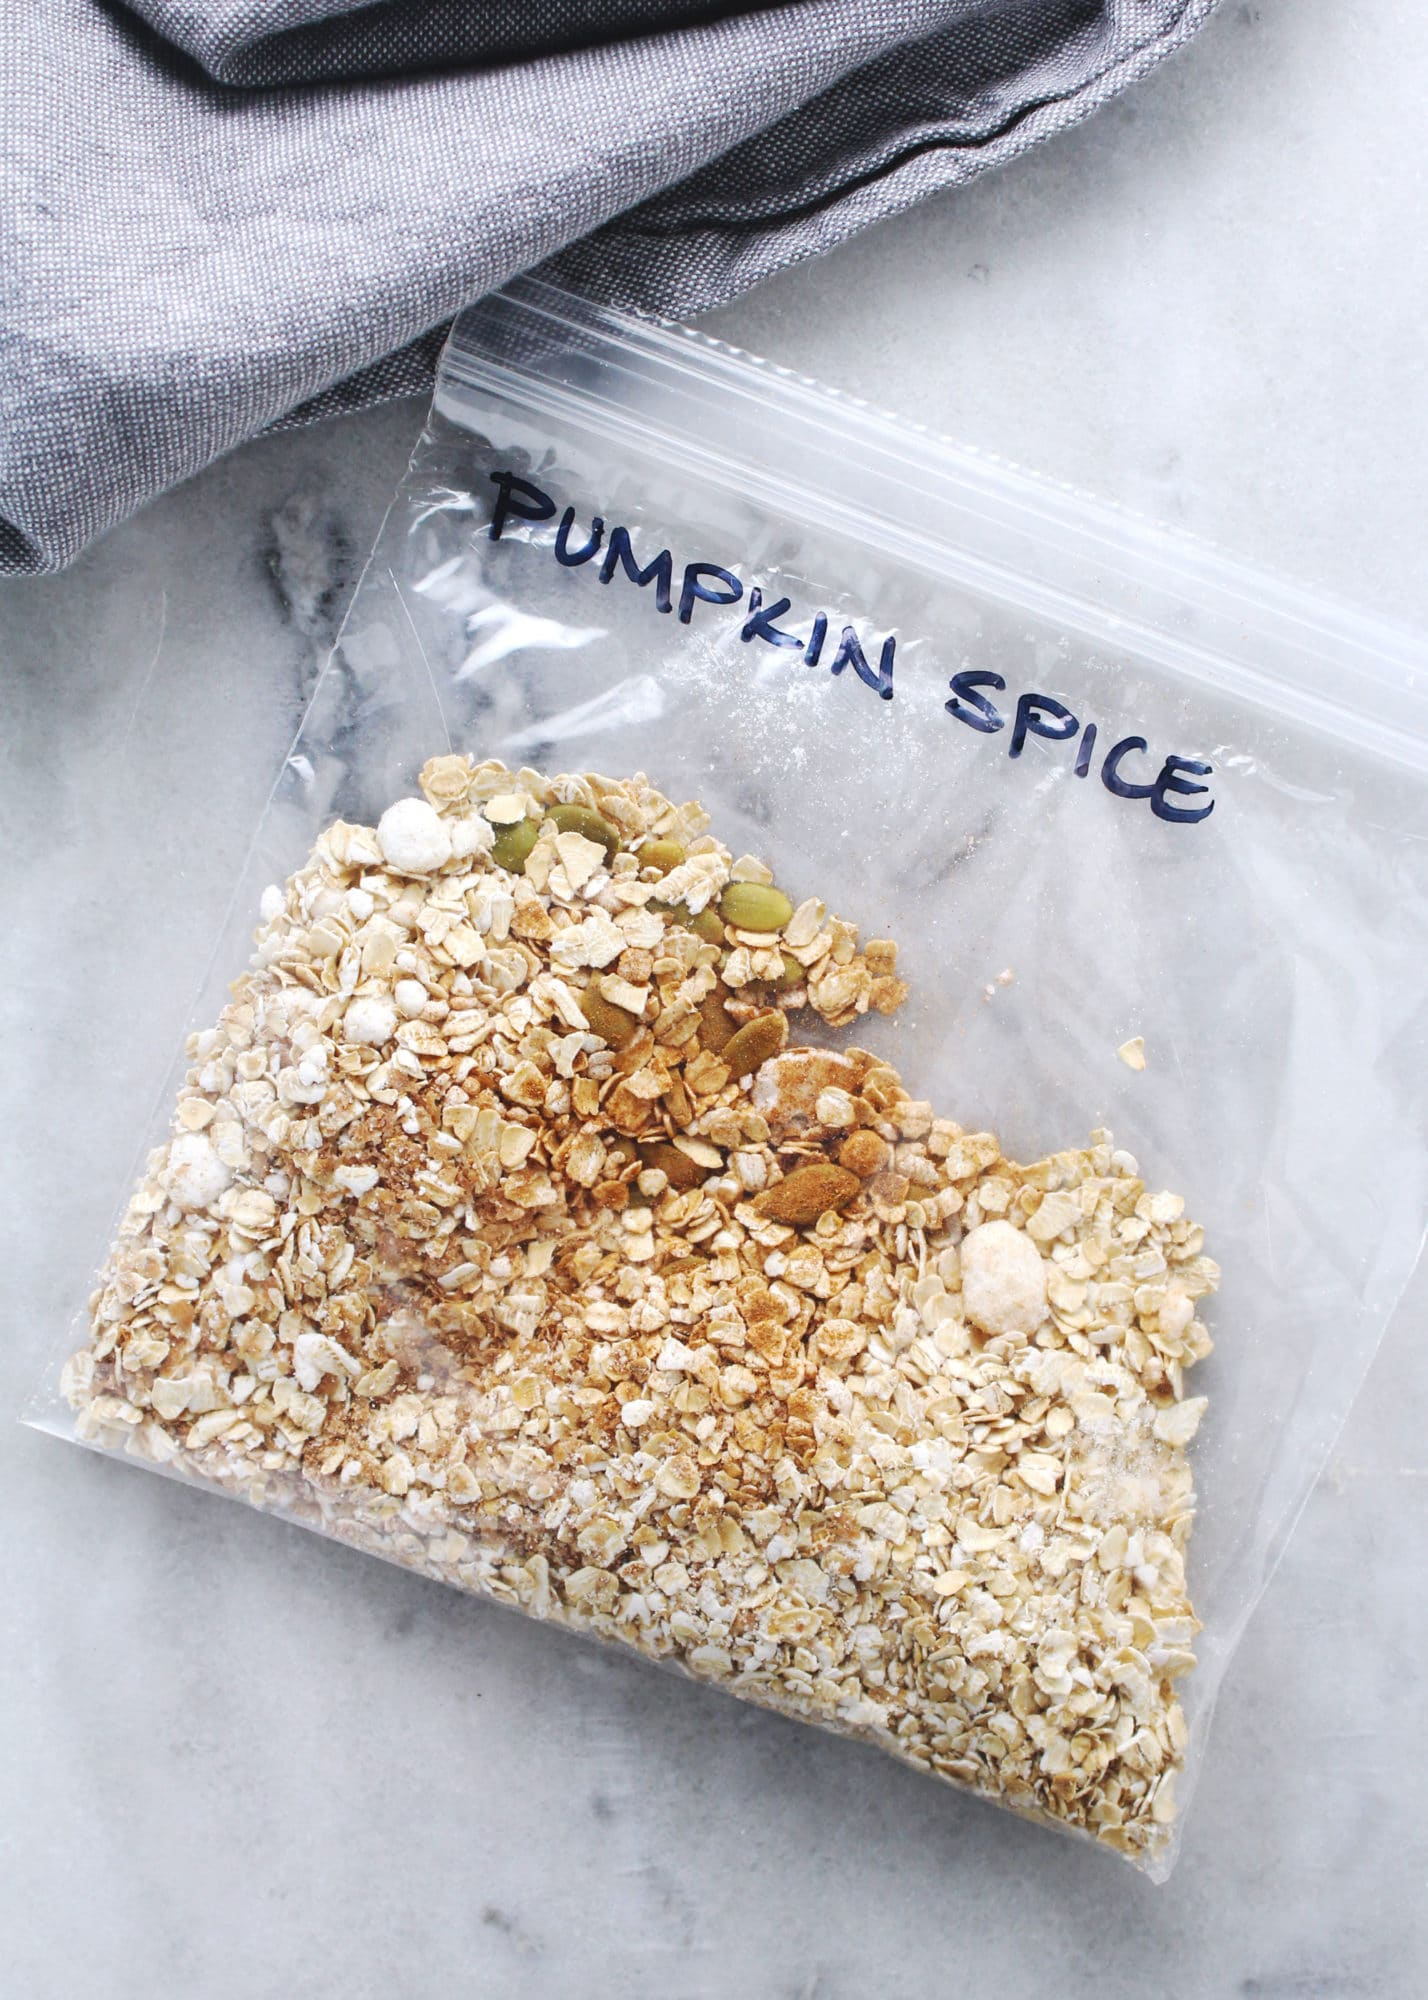 pumpkin spice instant oatmeal in zip-top bag on marble background